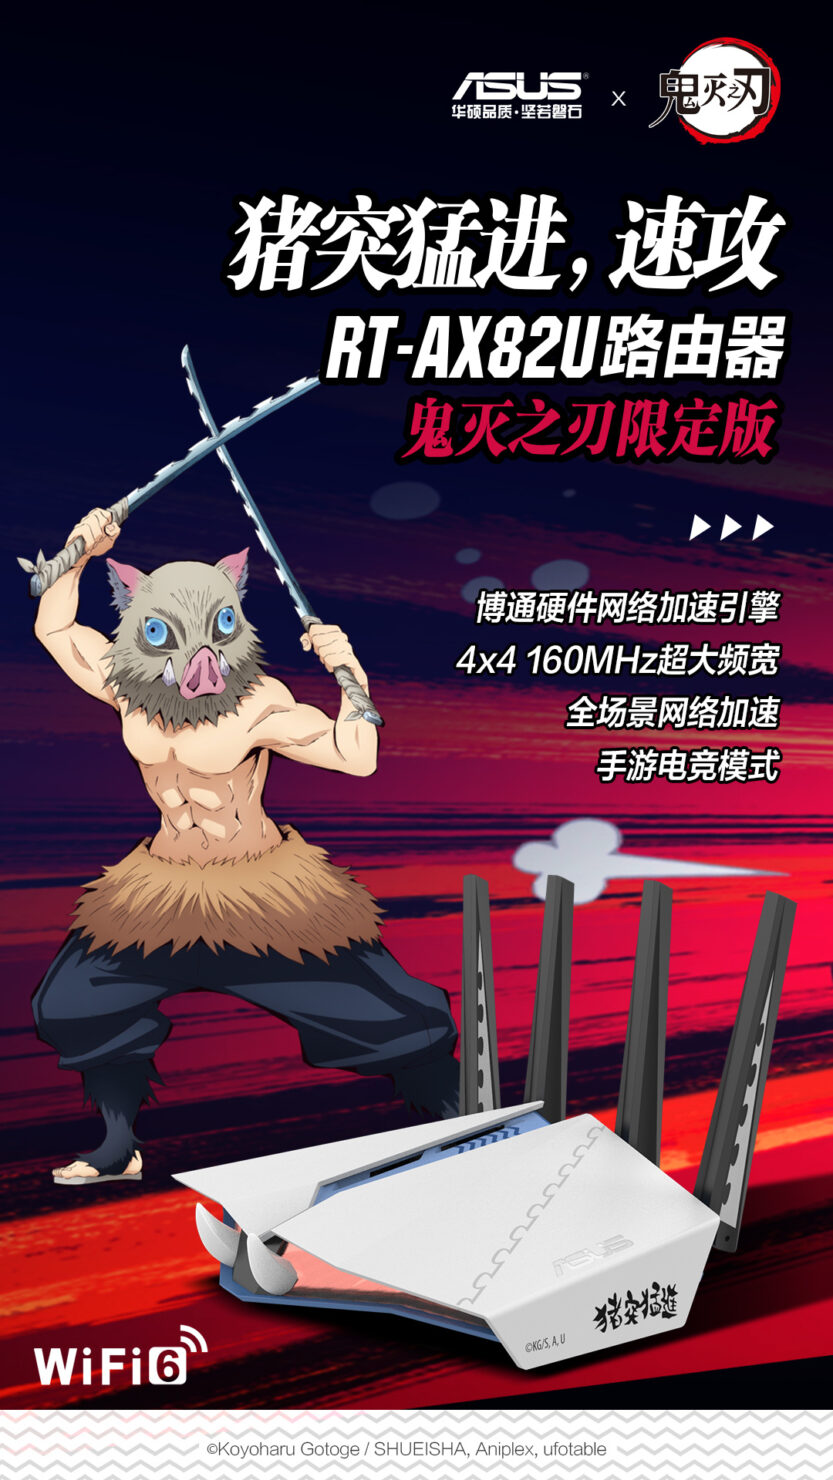 asus-demon-slayer-products-6